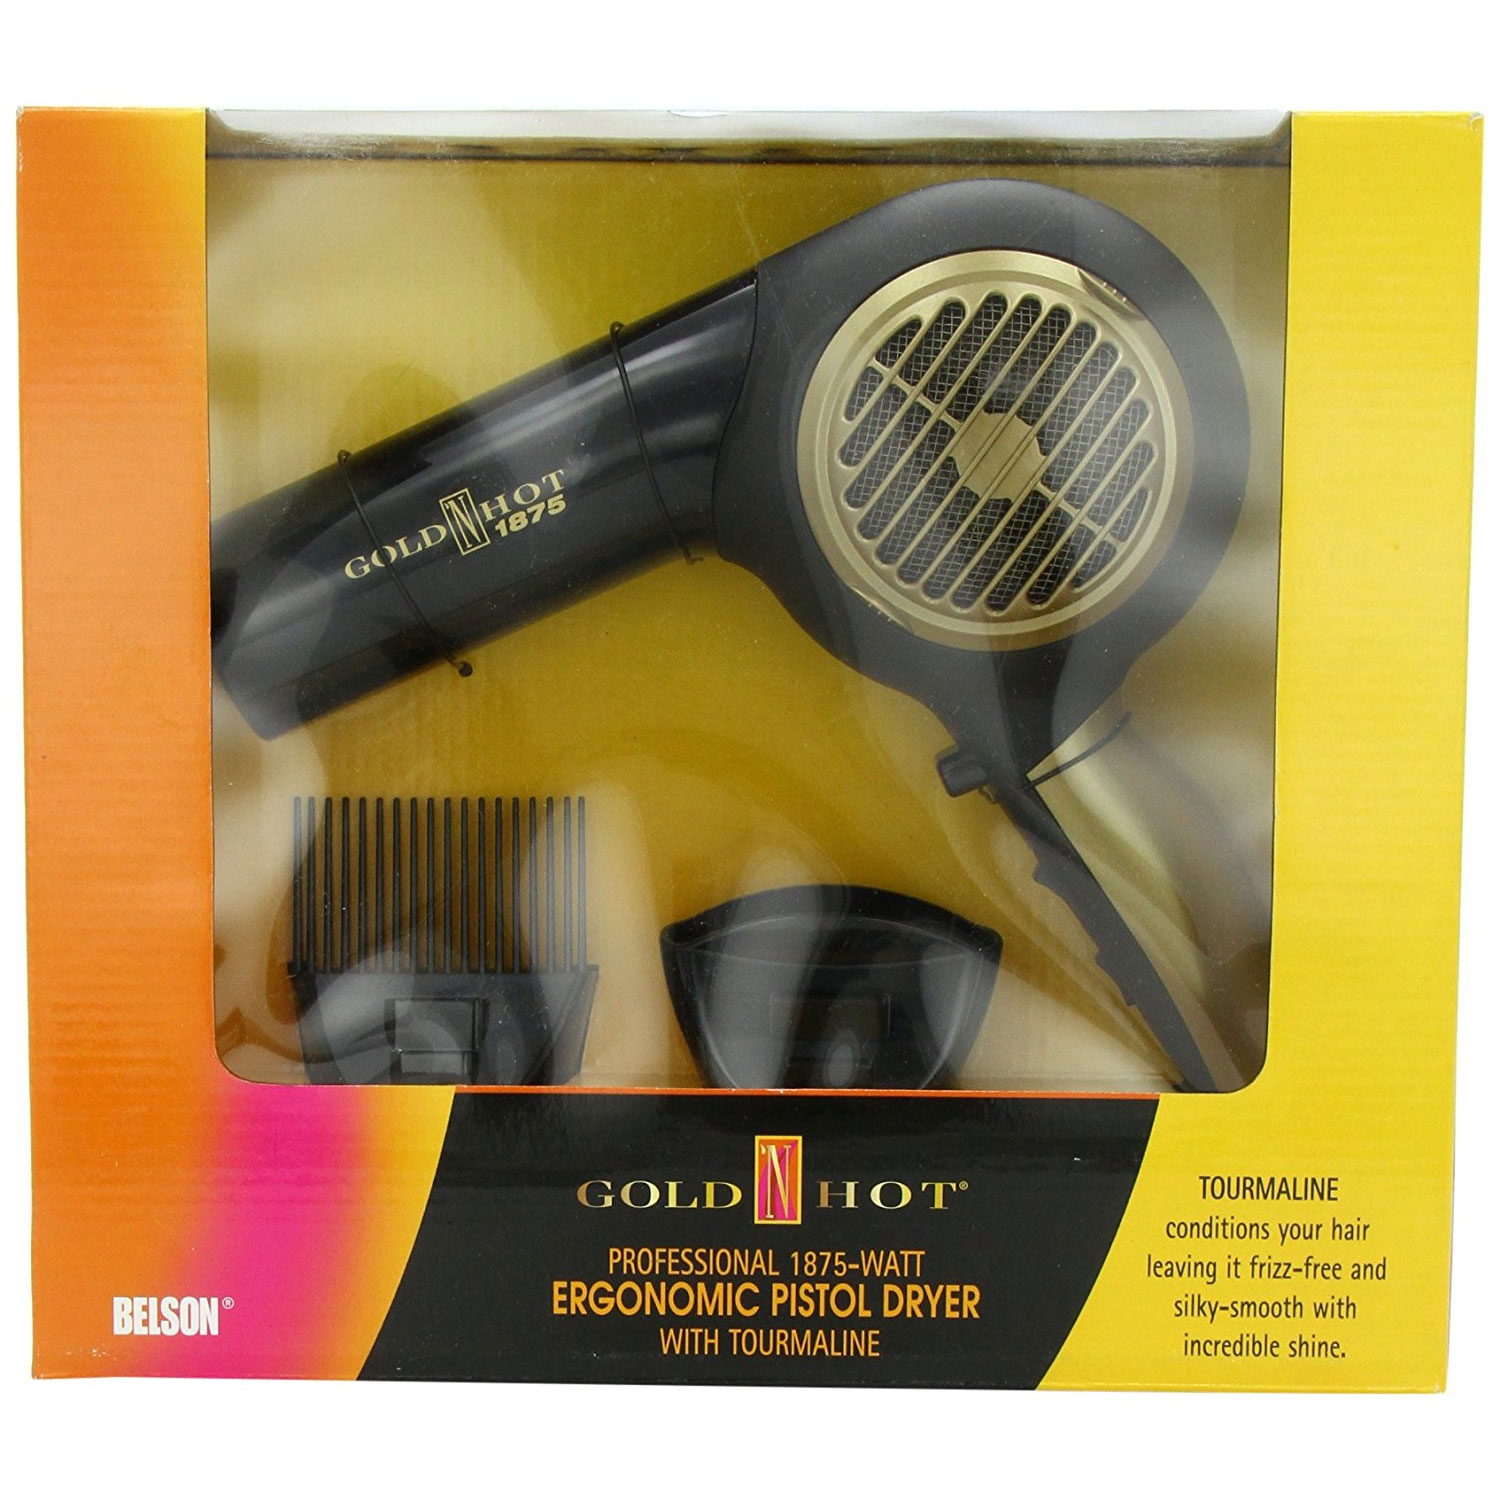 Image of Gold N Hot 1875 Watt Ergonomic Pistol Dryer #GH2260